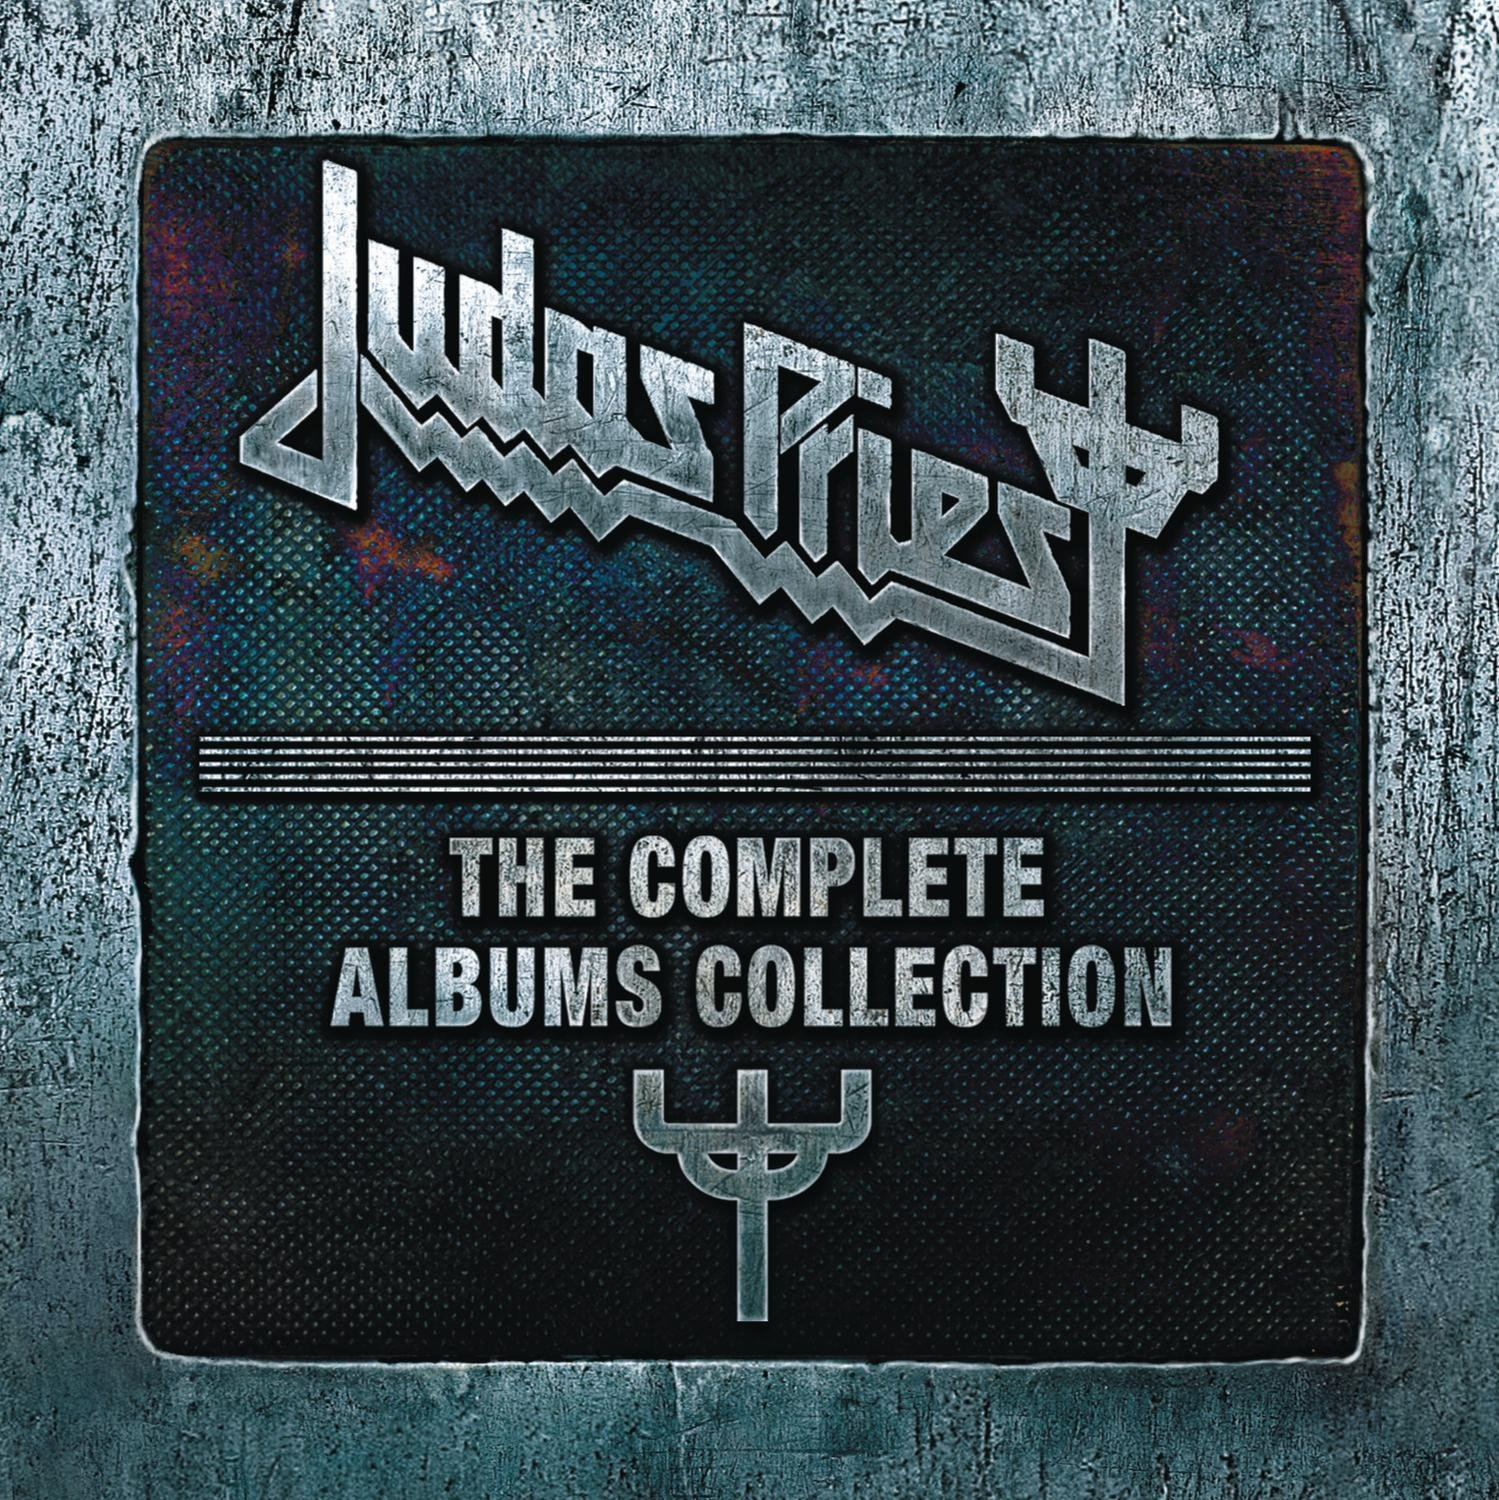 The Complete Albums Collection by Sony Legacy